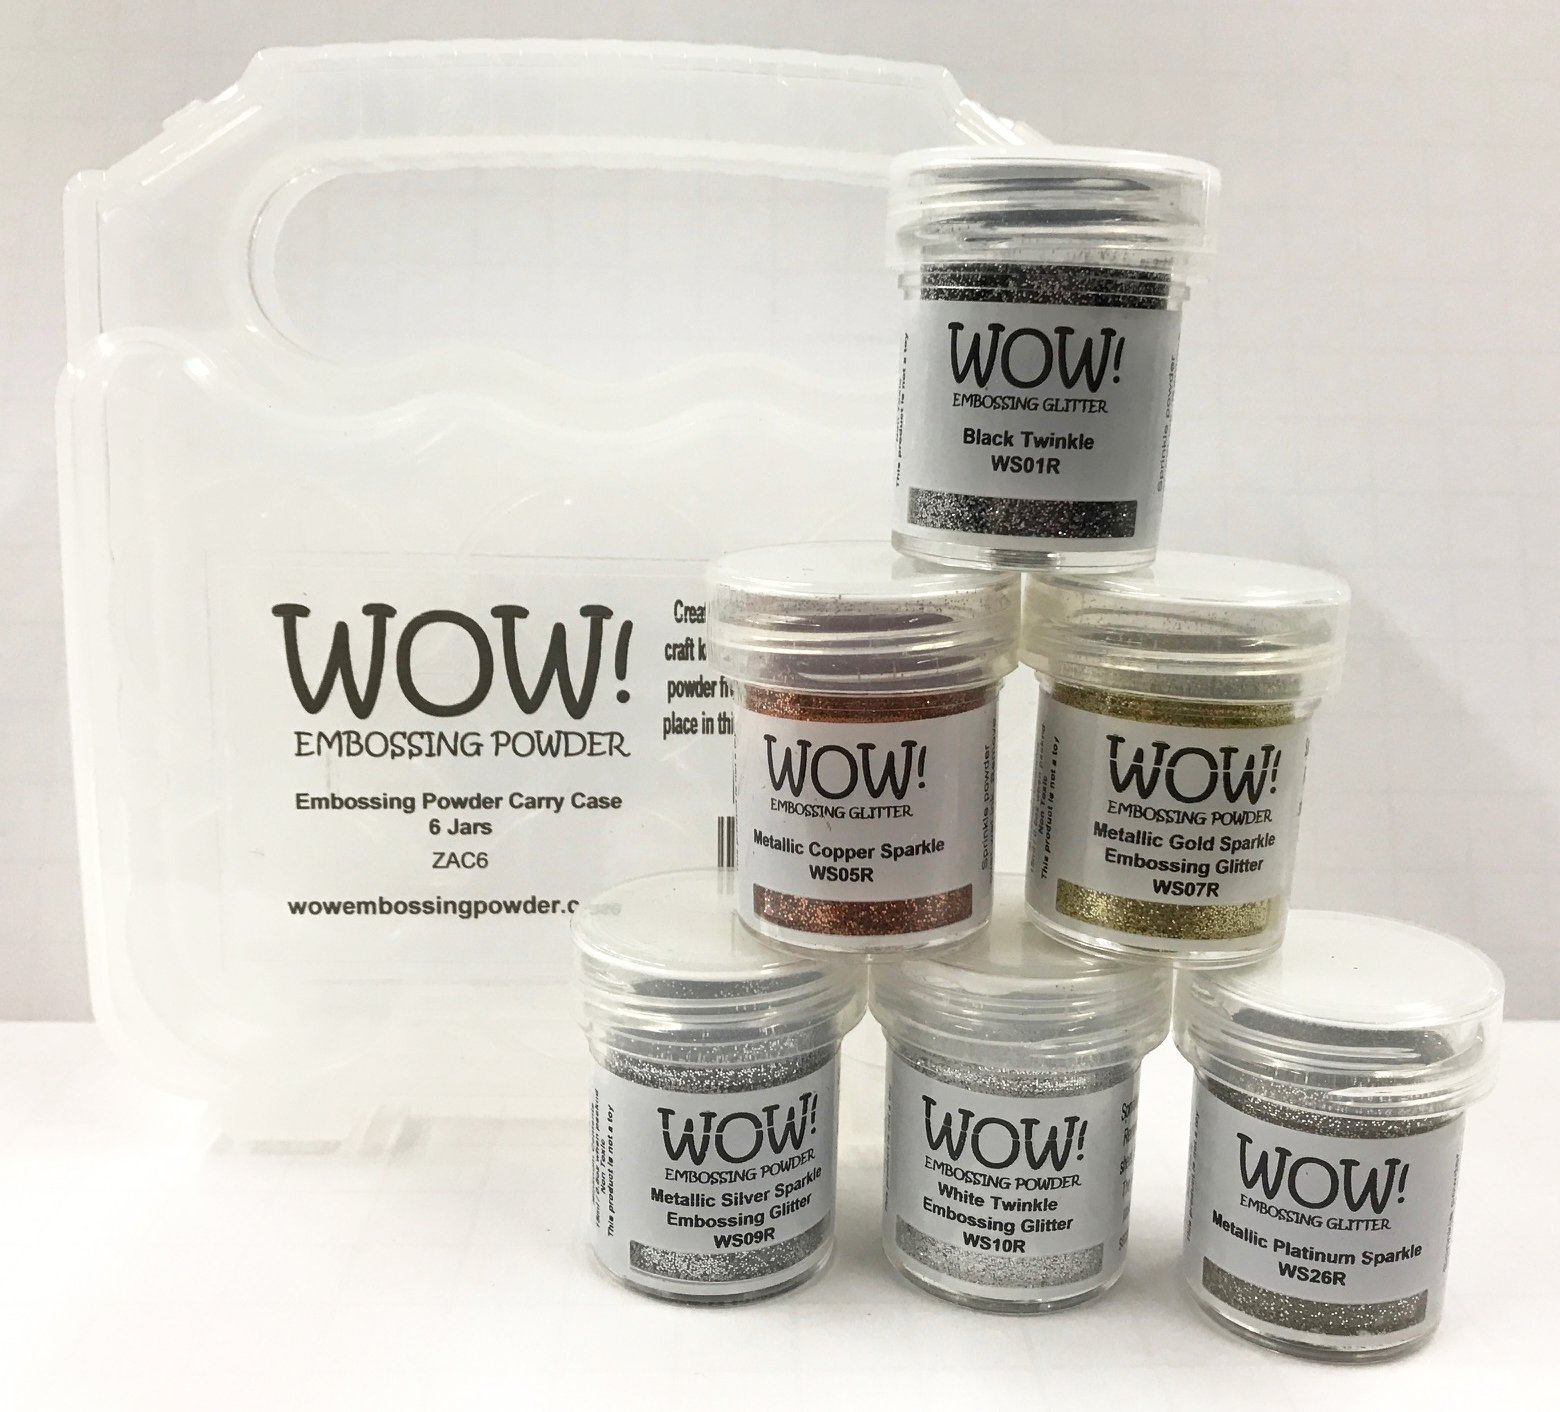 WOW! Embossing Powder in Metallic Shimmer Colors 6-Pack Kit and Clear Carrying Case - Bundle 7 Items